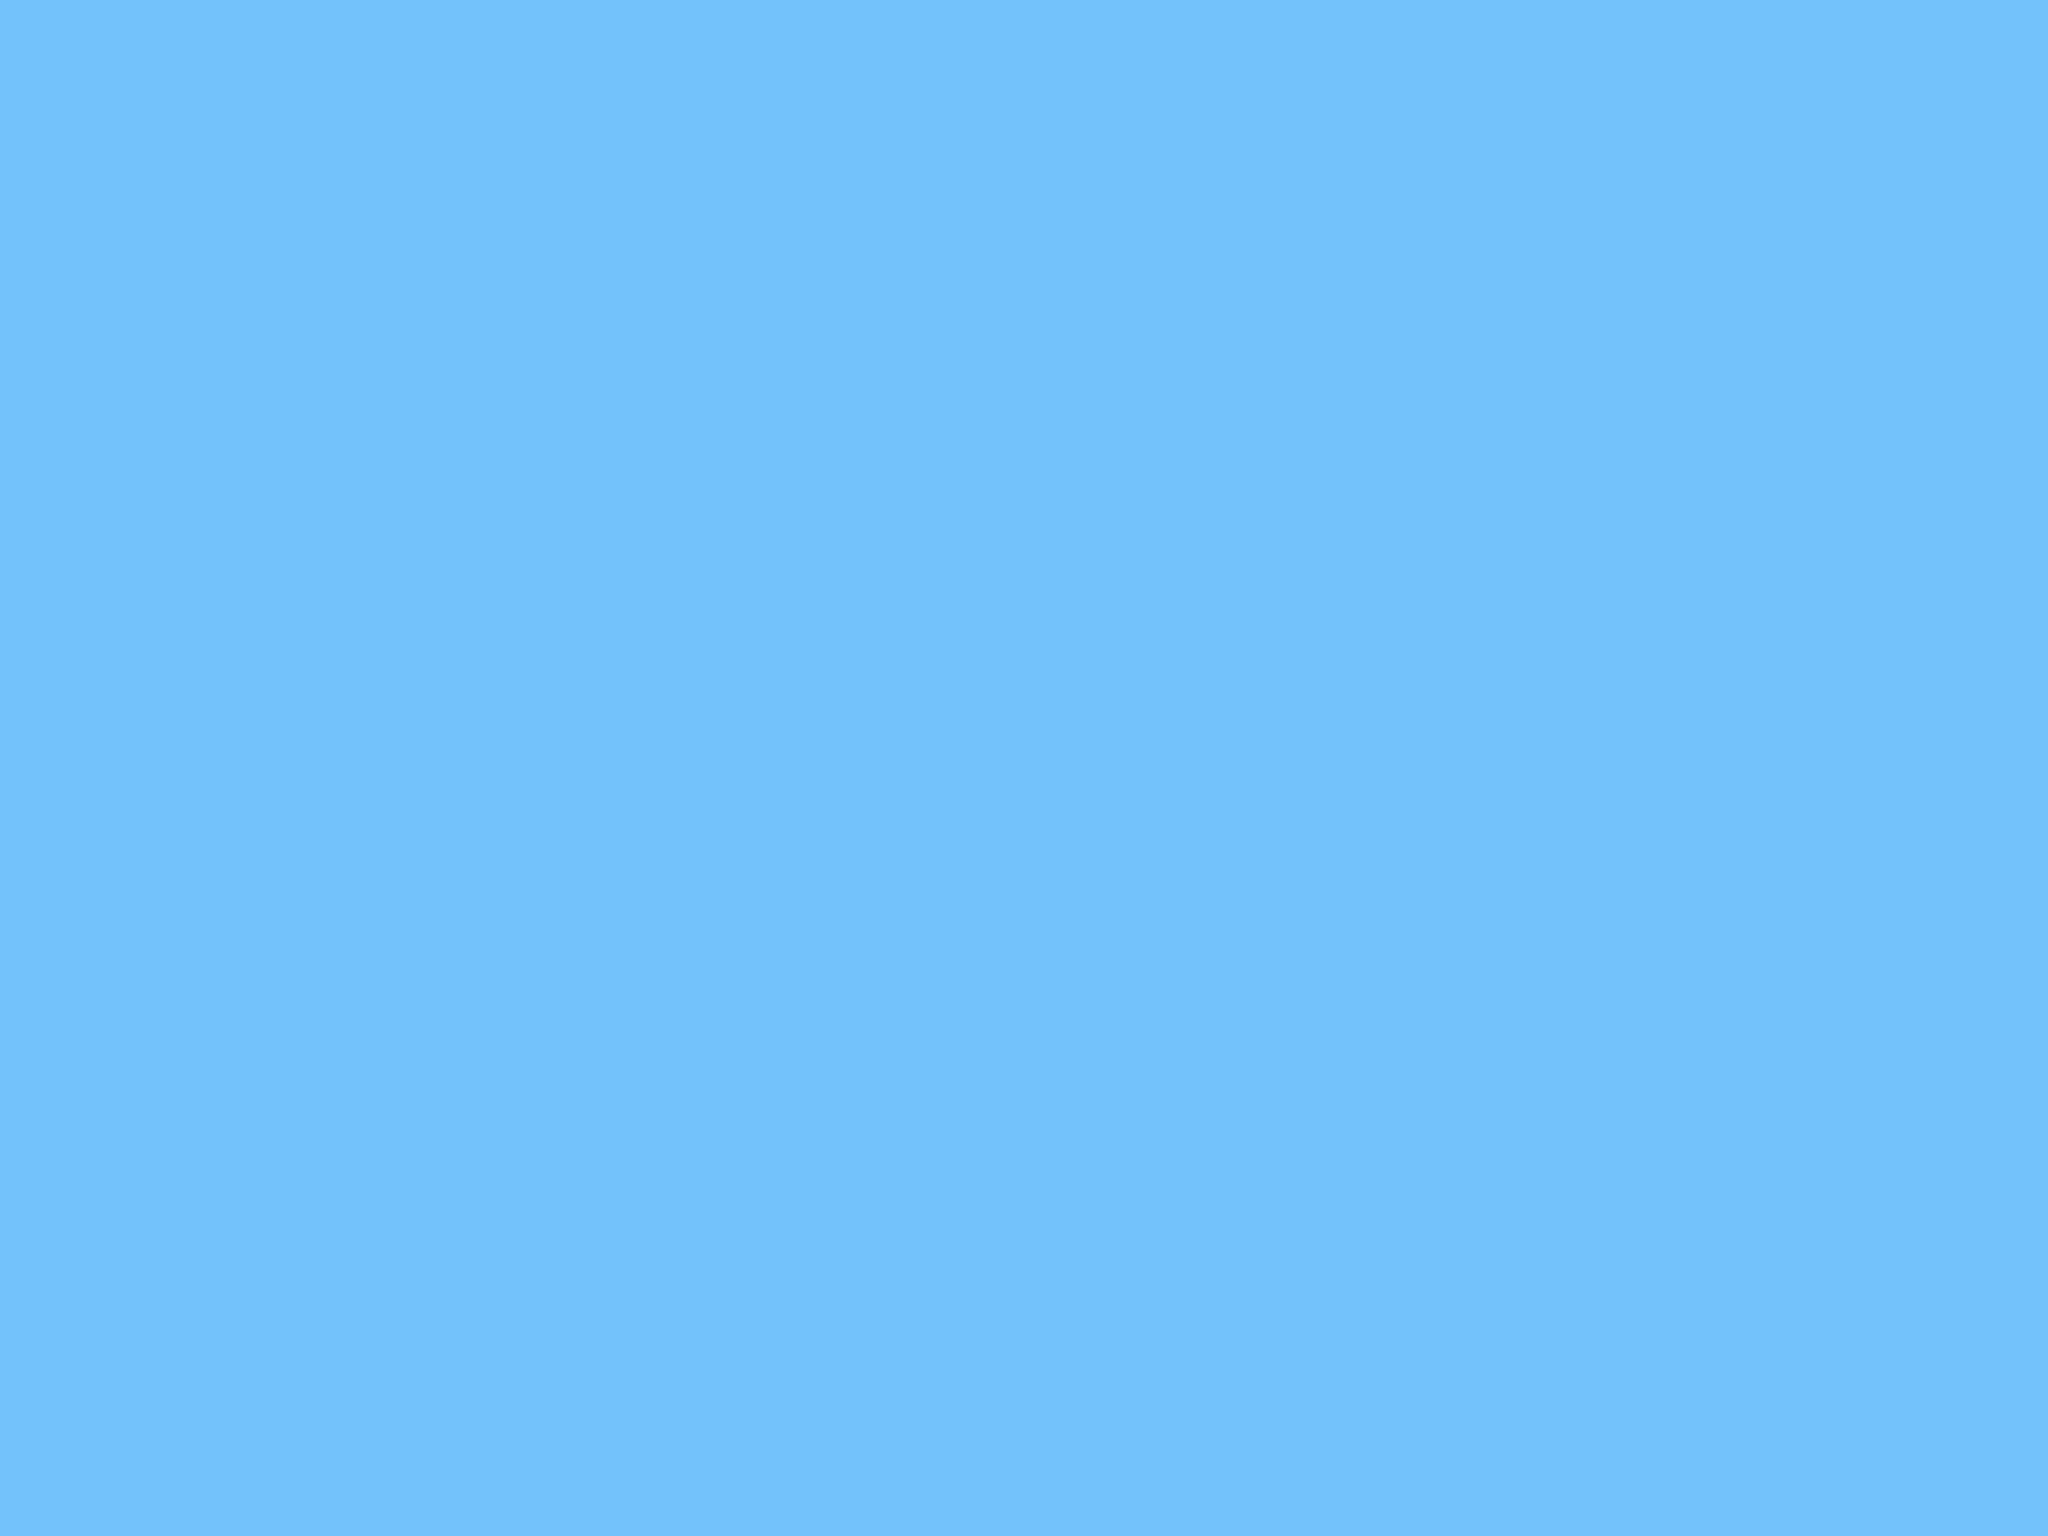 2048x1536 Maya Blue Solid Color Background